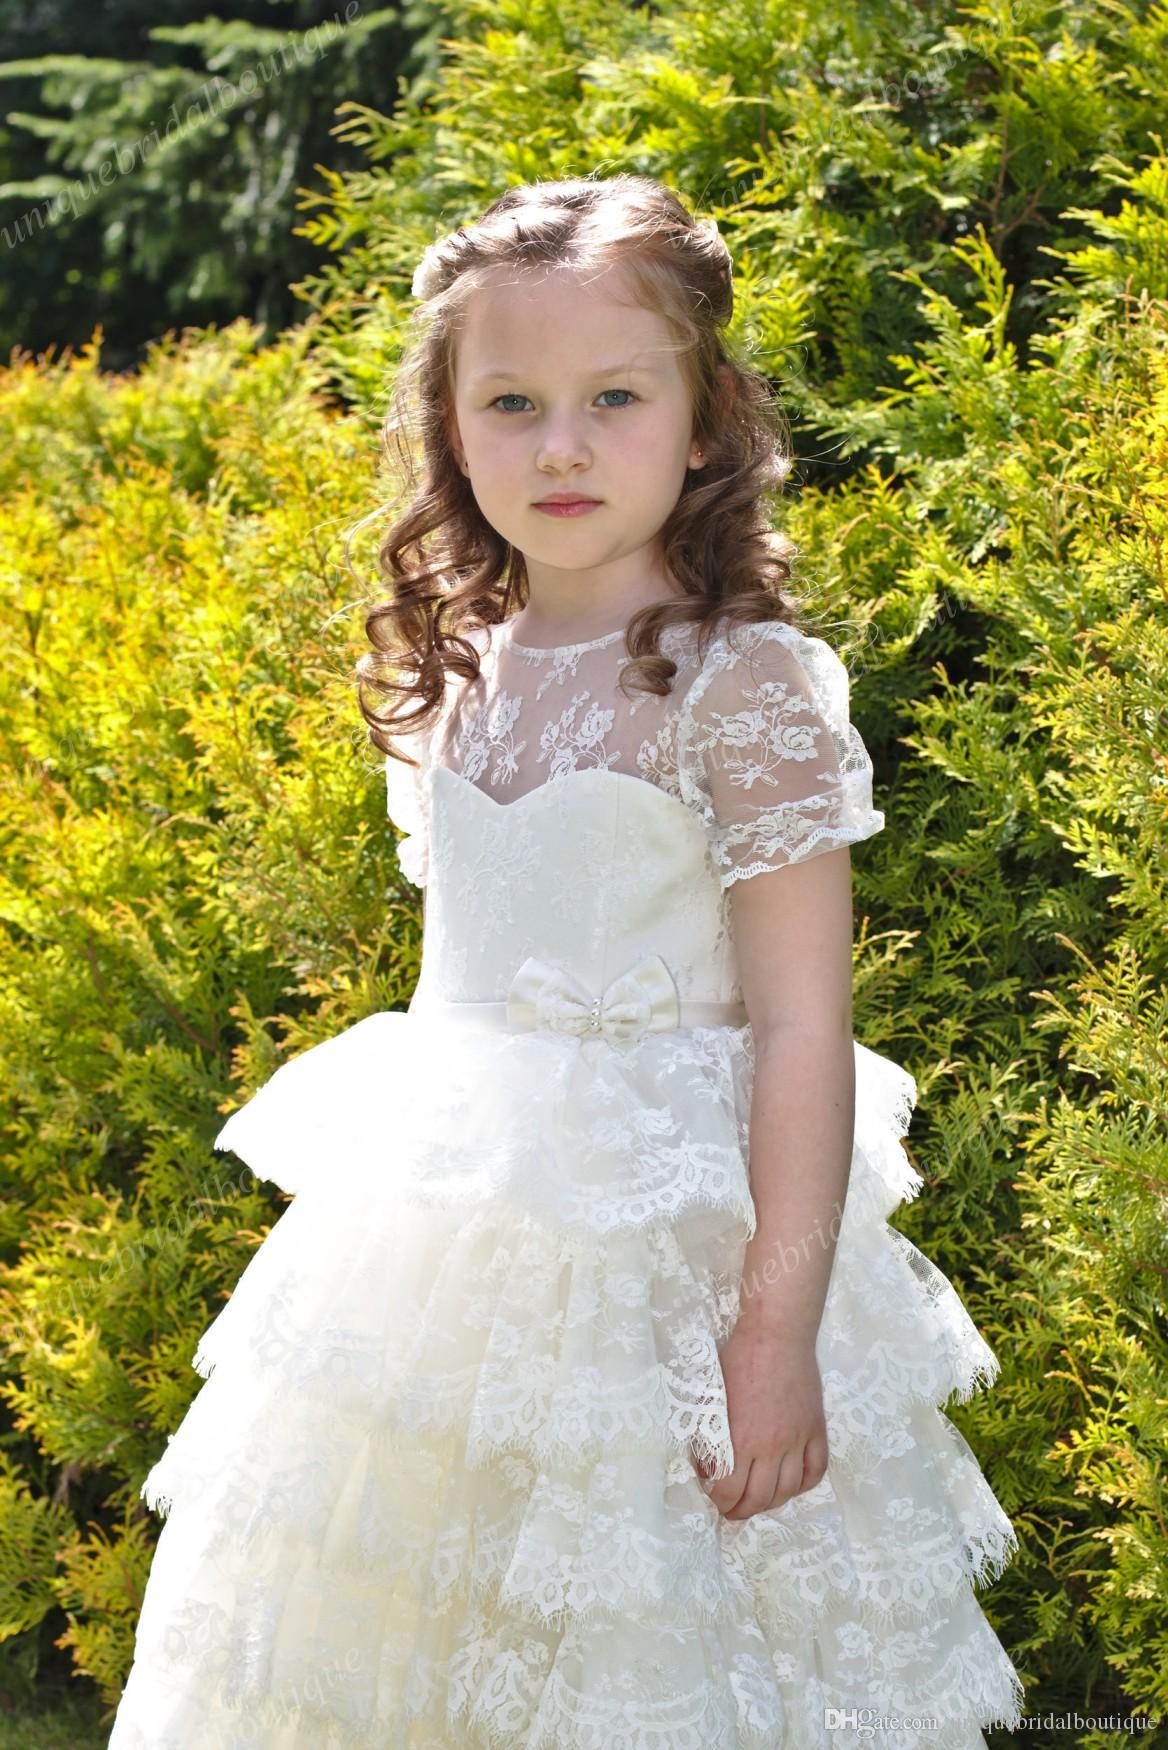 Cupcake Flower Girls Dresses 2017 with Short Sleeves and Ruffles Skirt Ball Gown Tea Length Fully Lace First Communion Dress for Little Girl